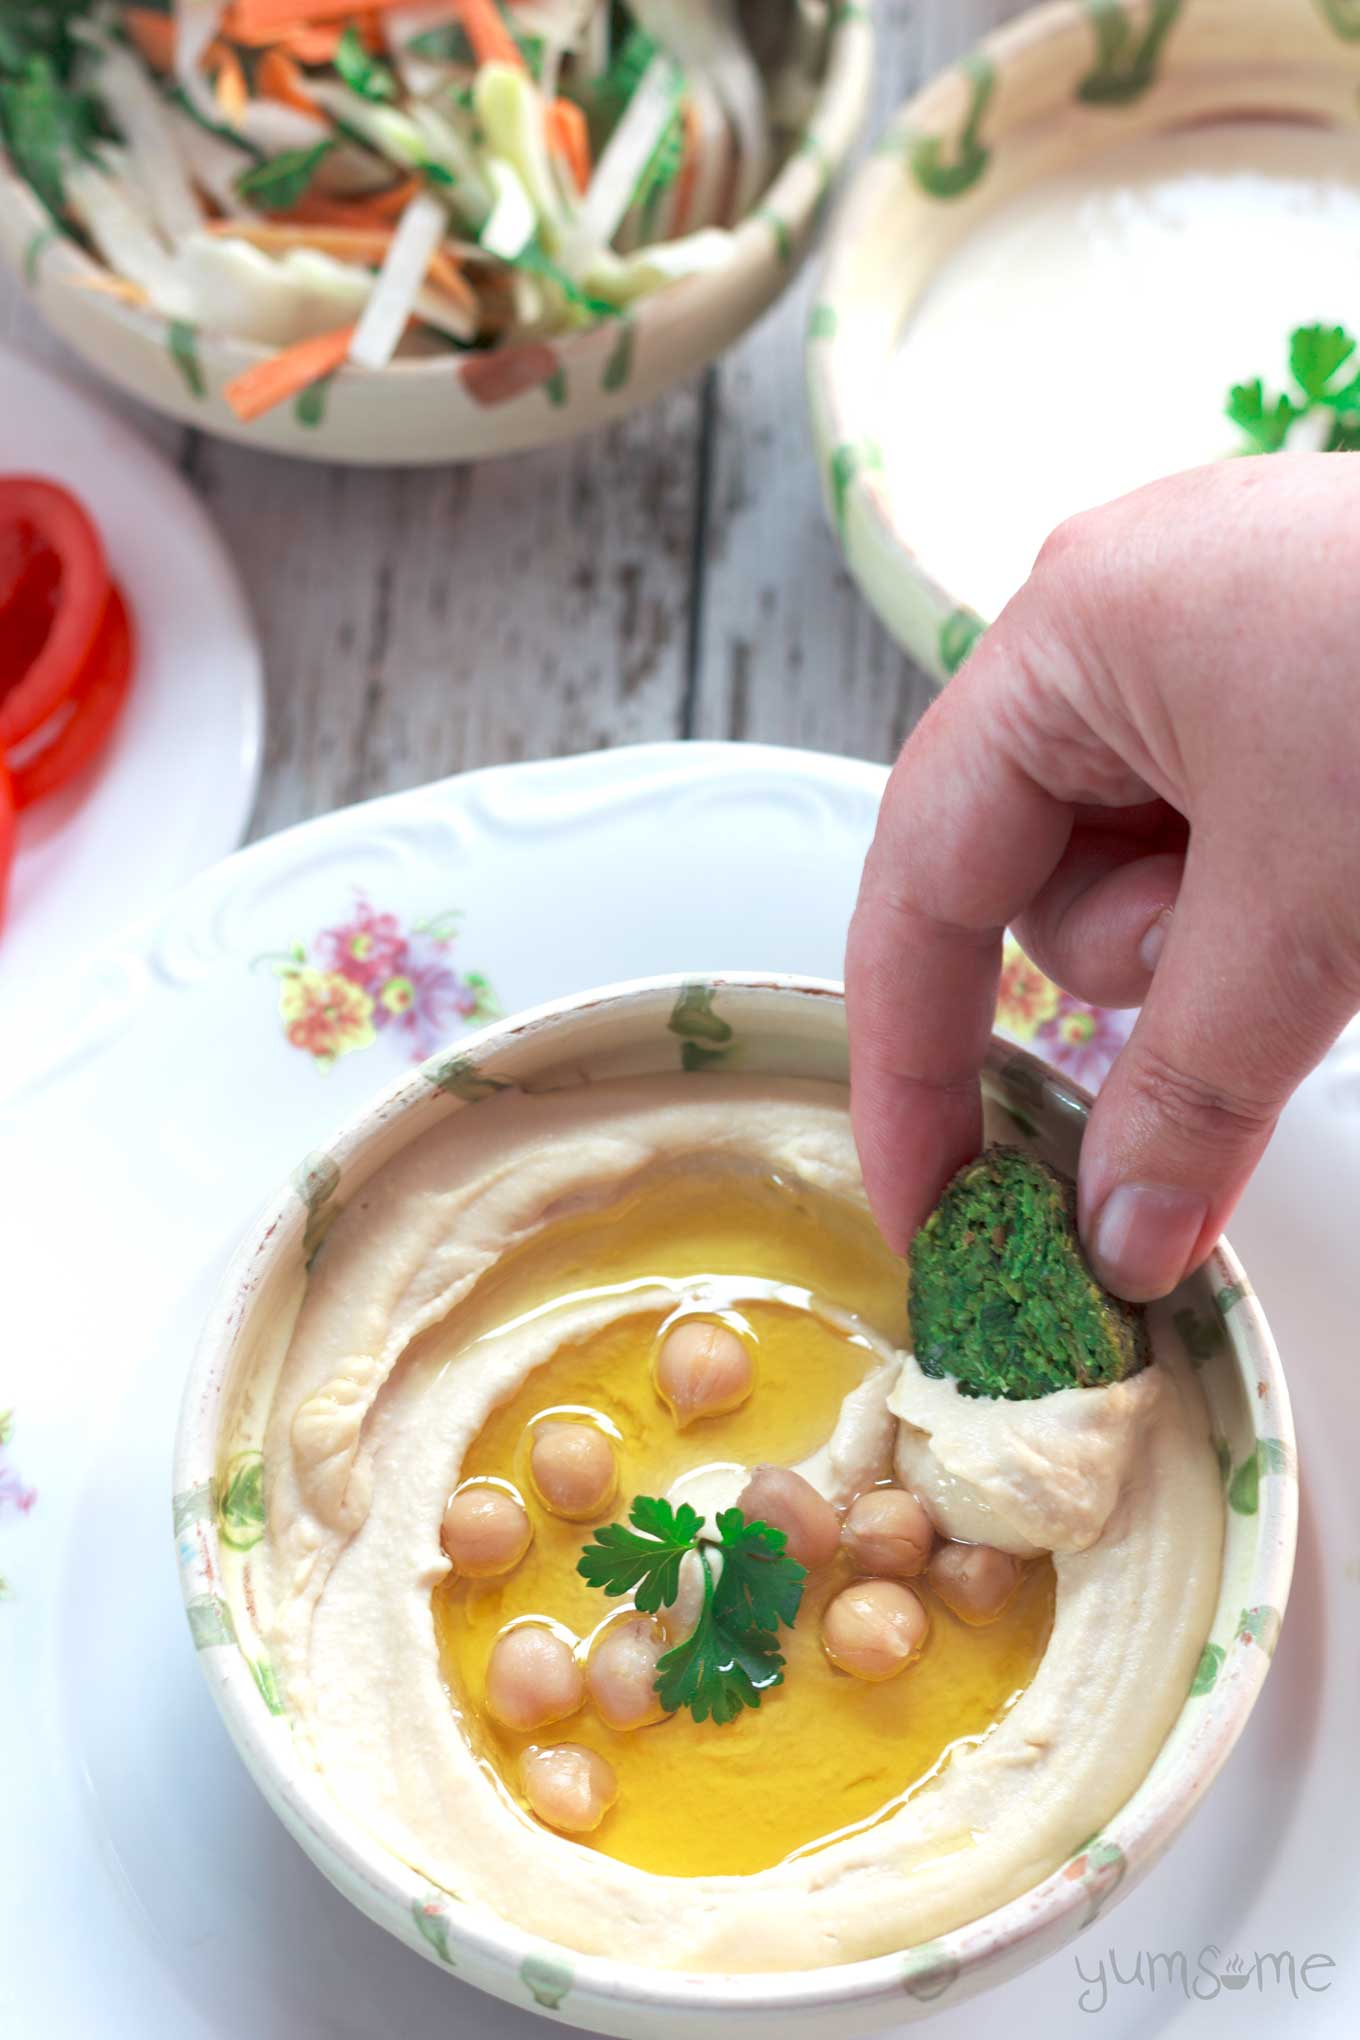 A hand dipping falafel into perfectly smooth and creamy hummus.